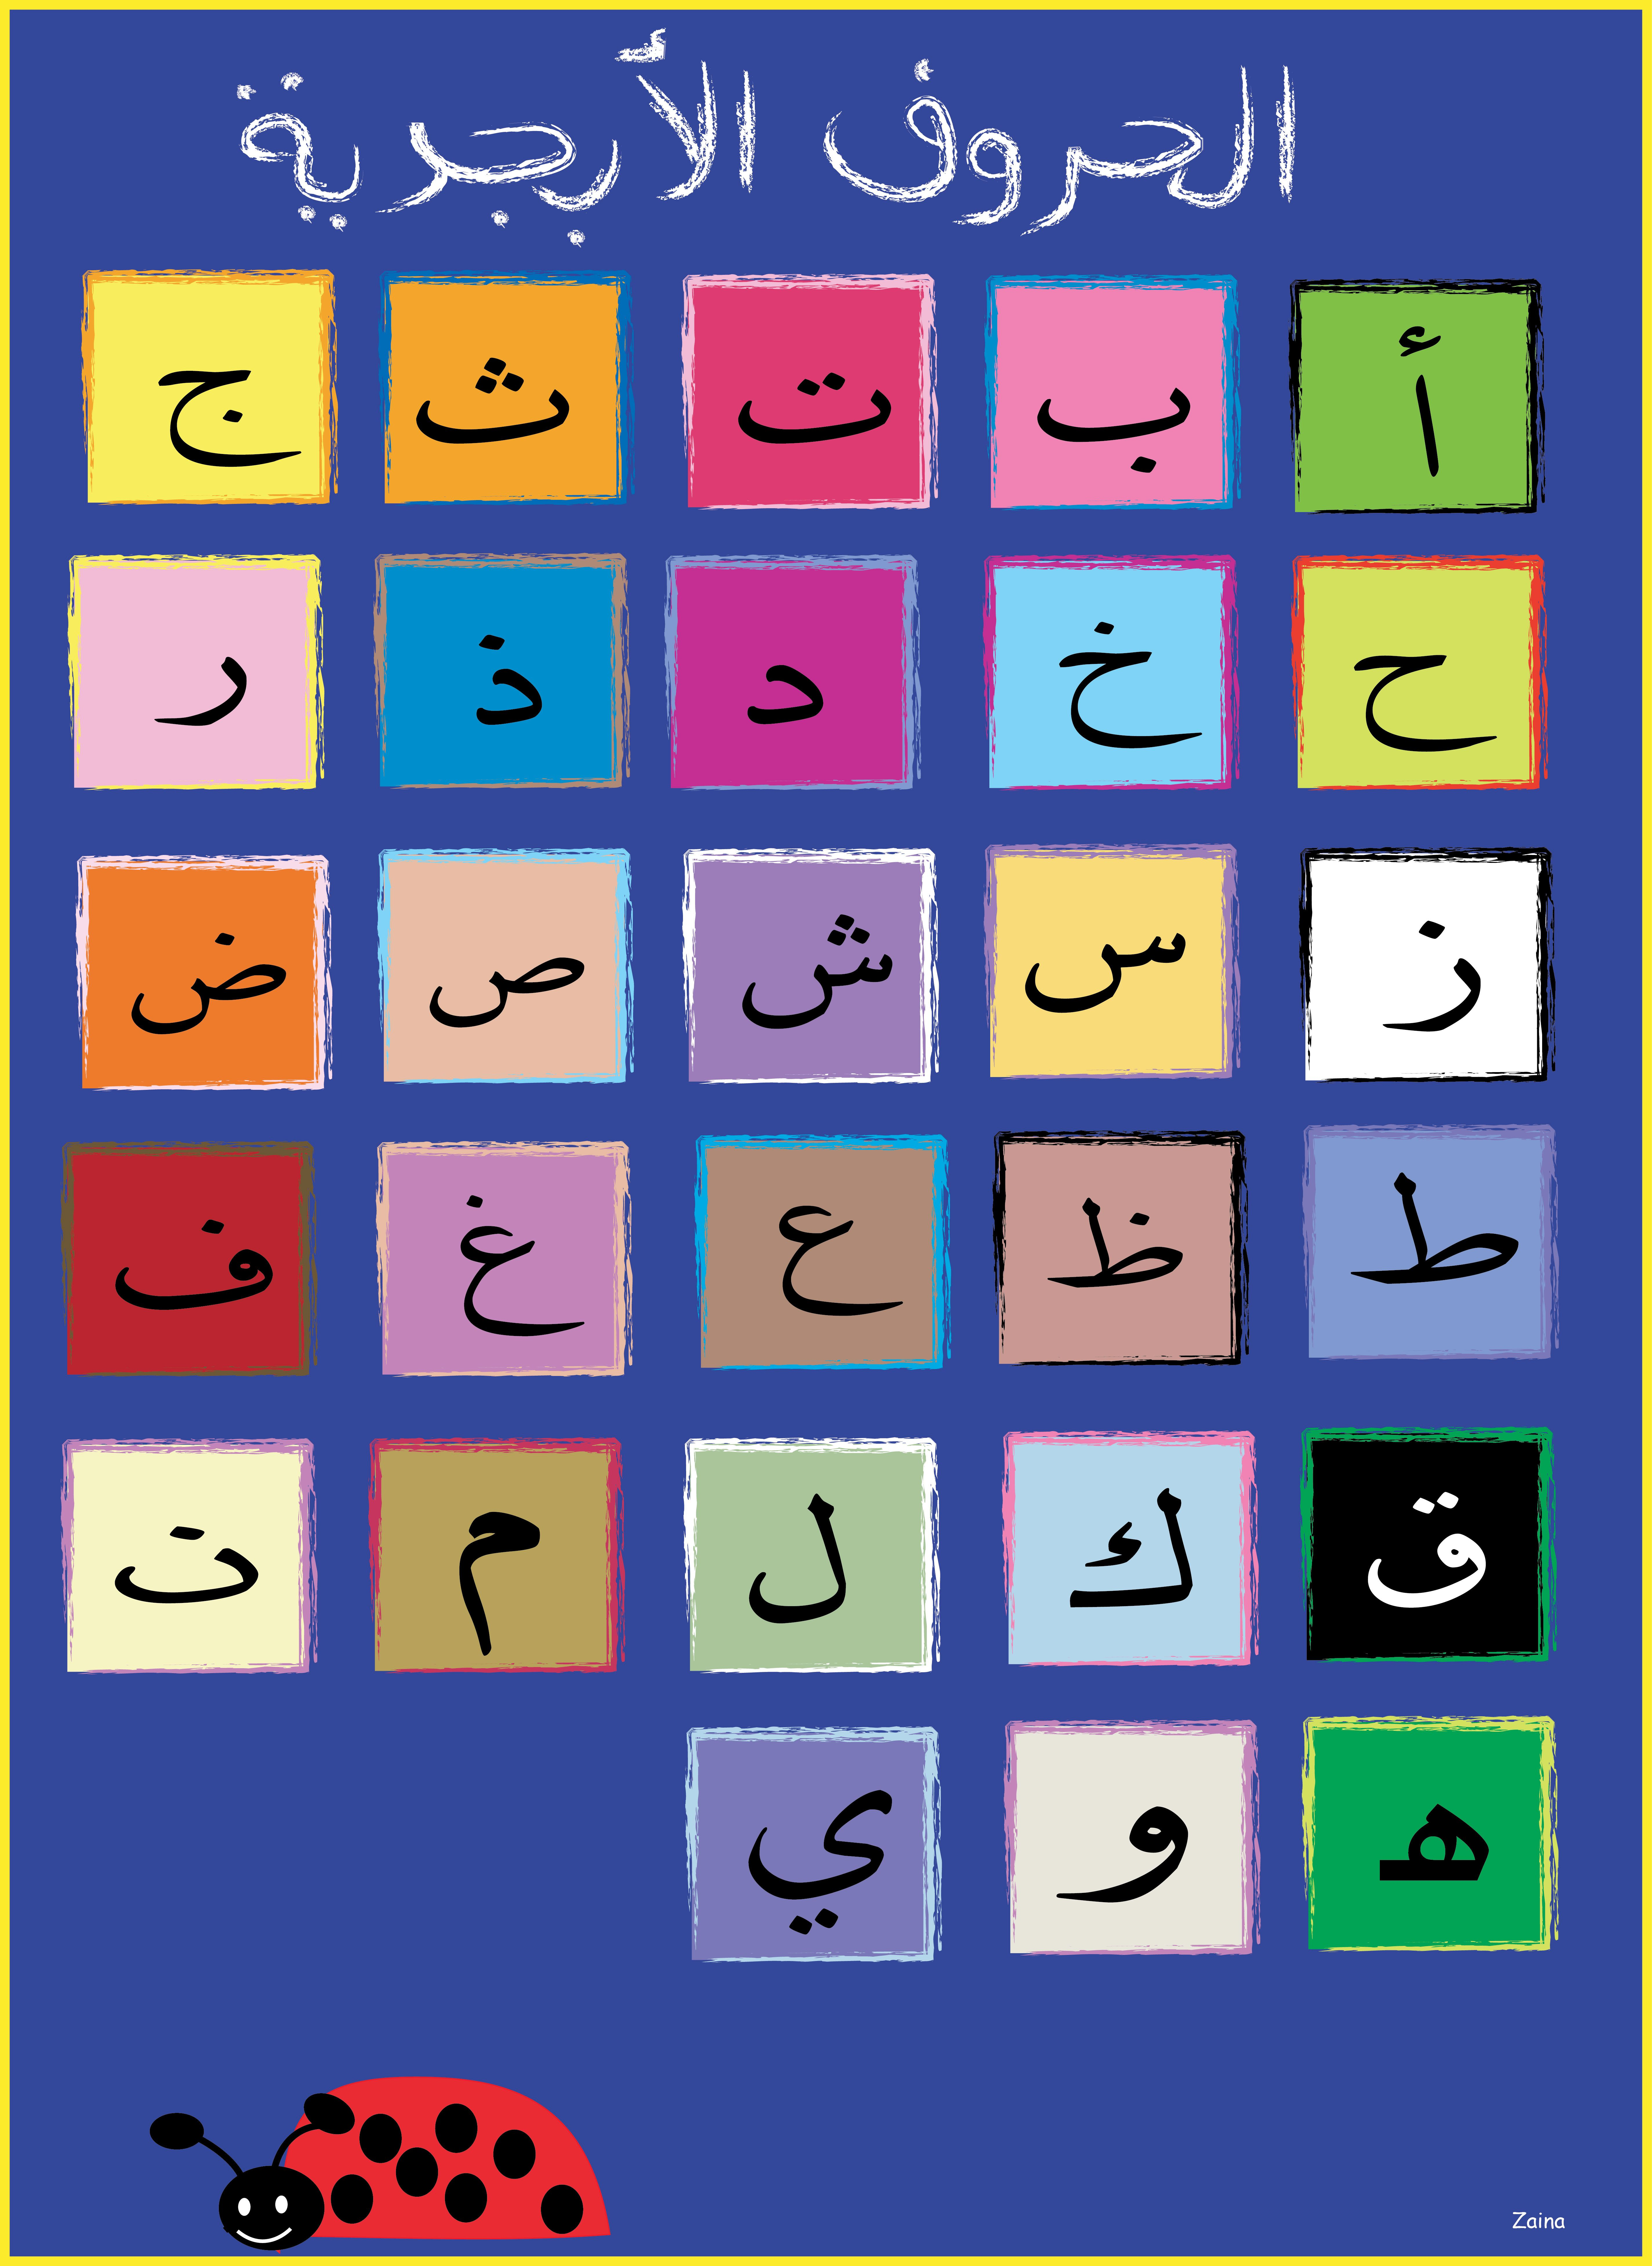 L At Abc Microsoft Com: This Is Arabic Alphabets Poster .